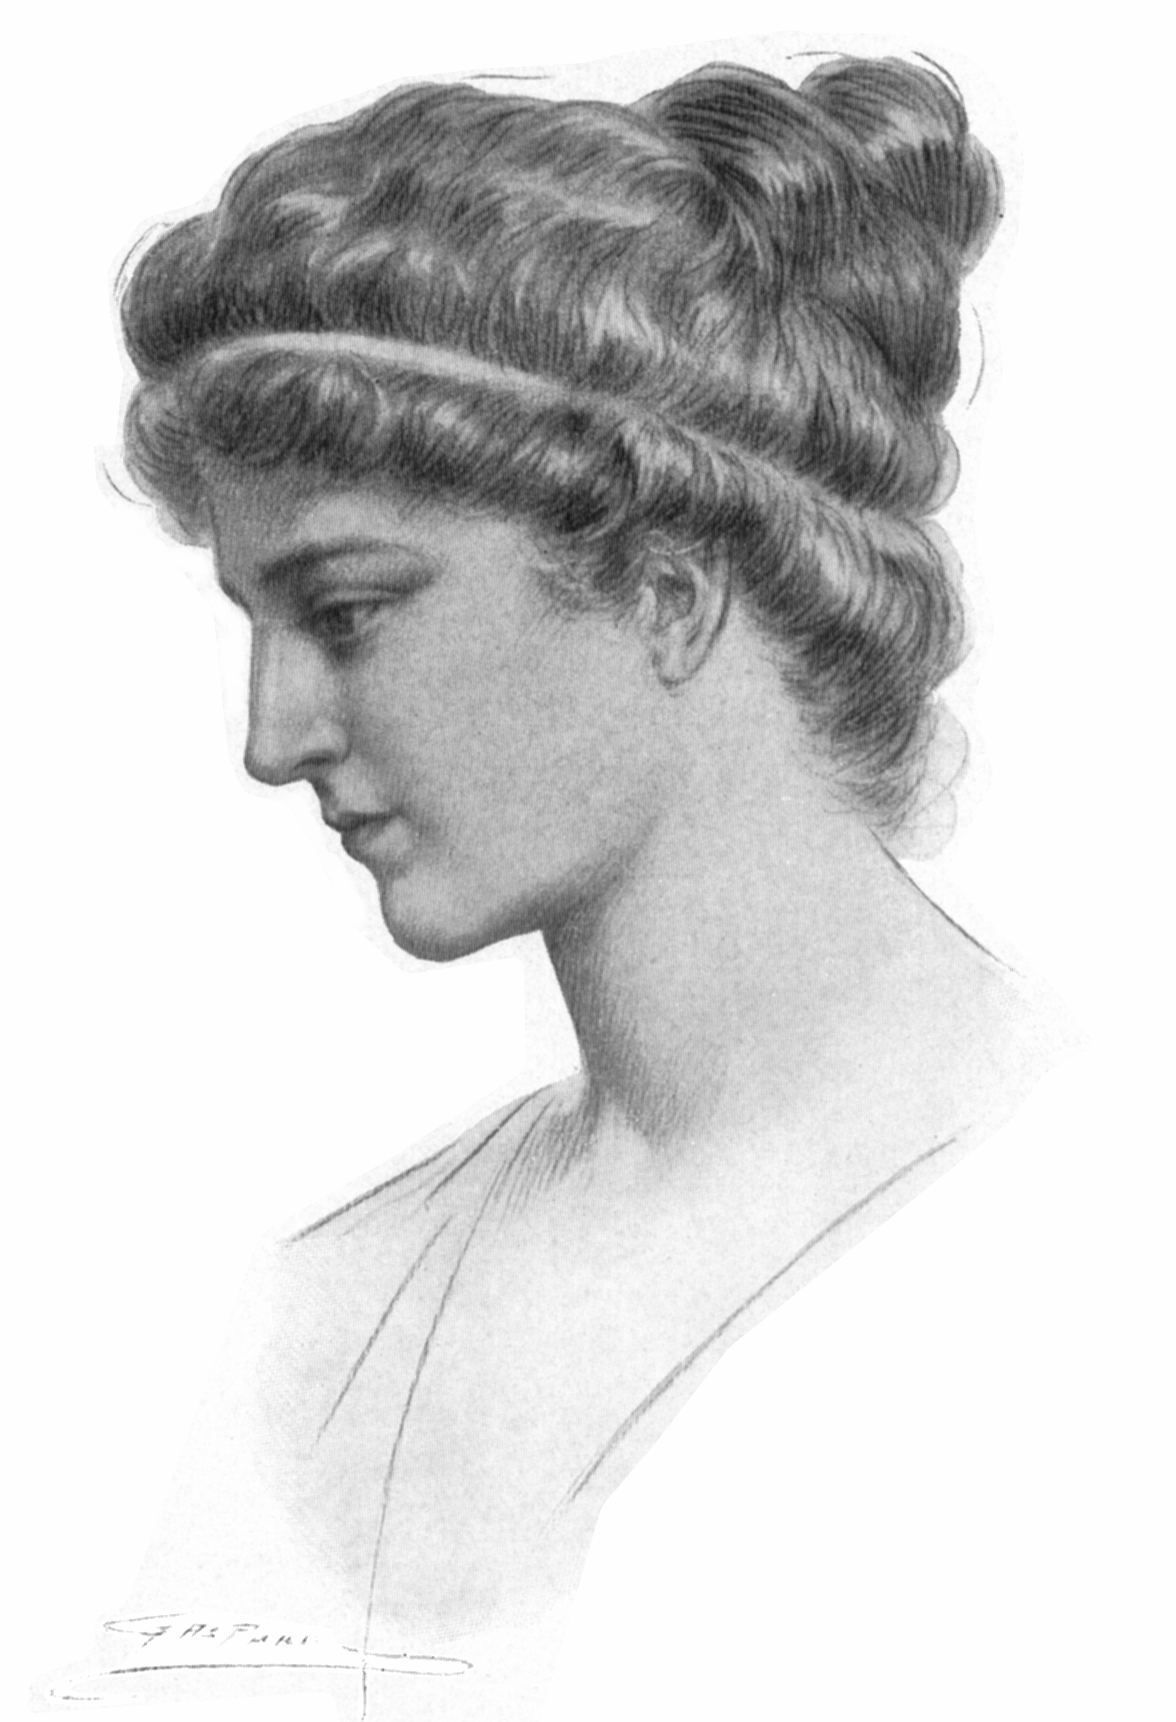 Hypatia_portrait.png (1176×1722)